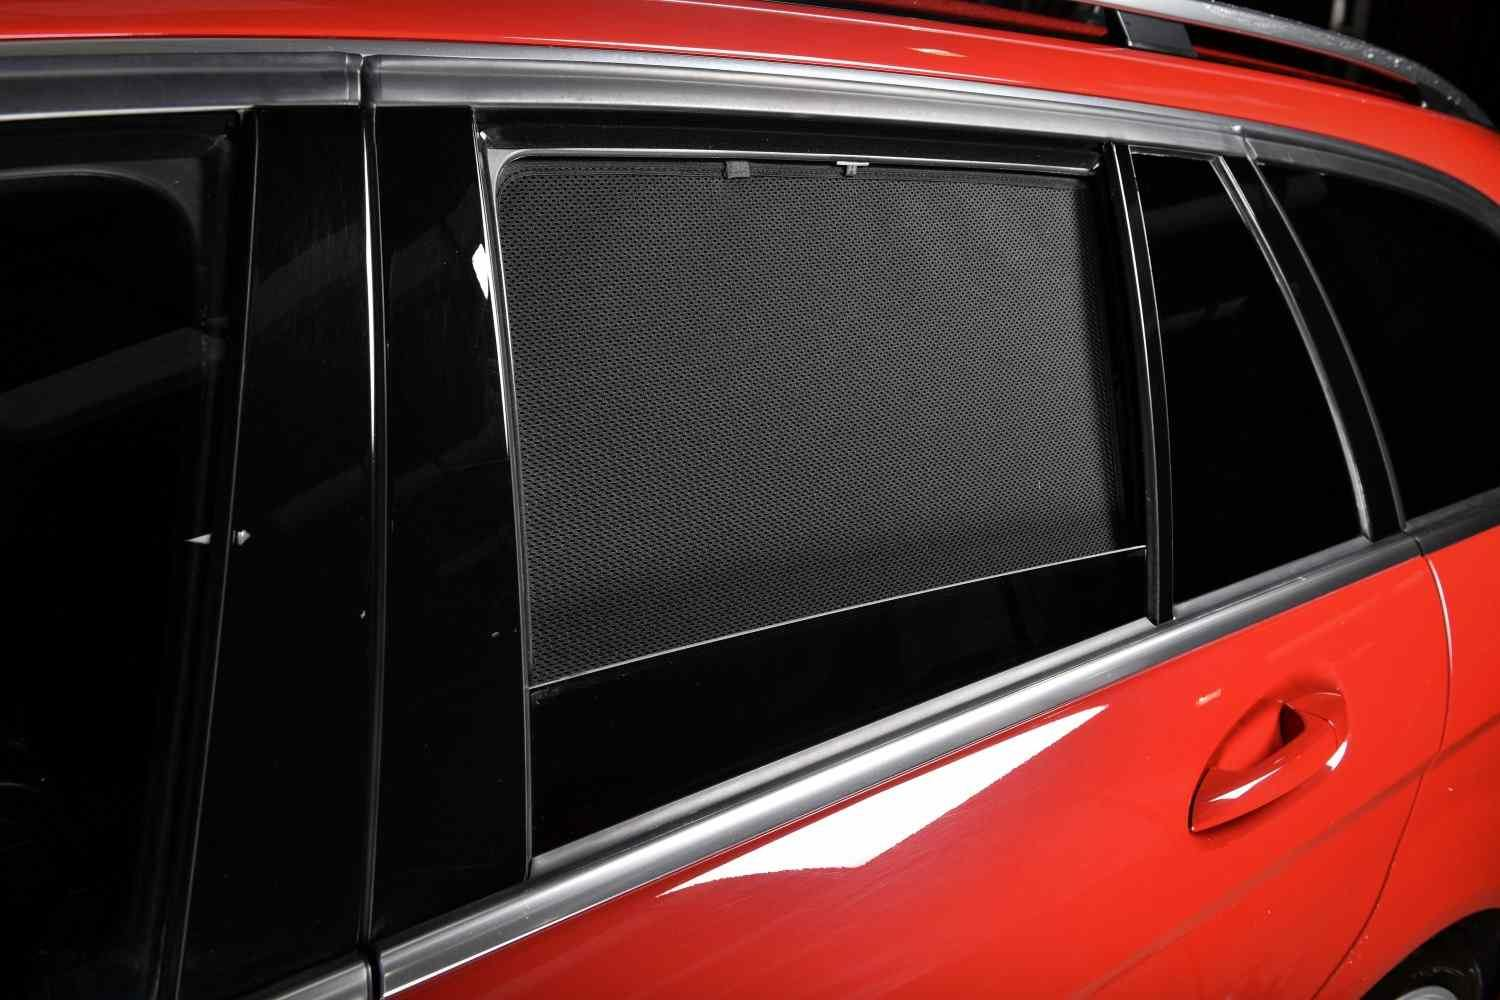 Window Shades Hyundai Kona Os Car Parts Expert